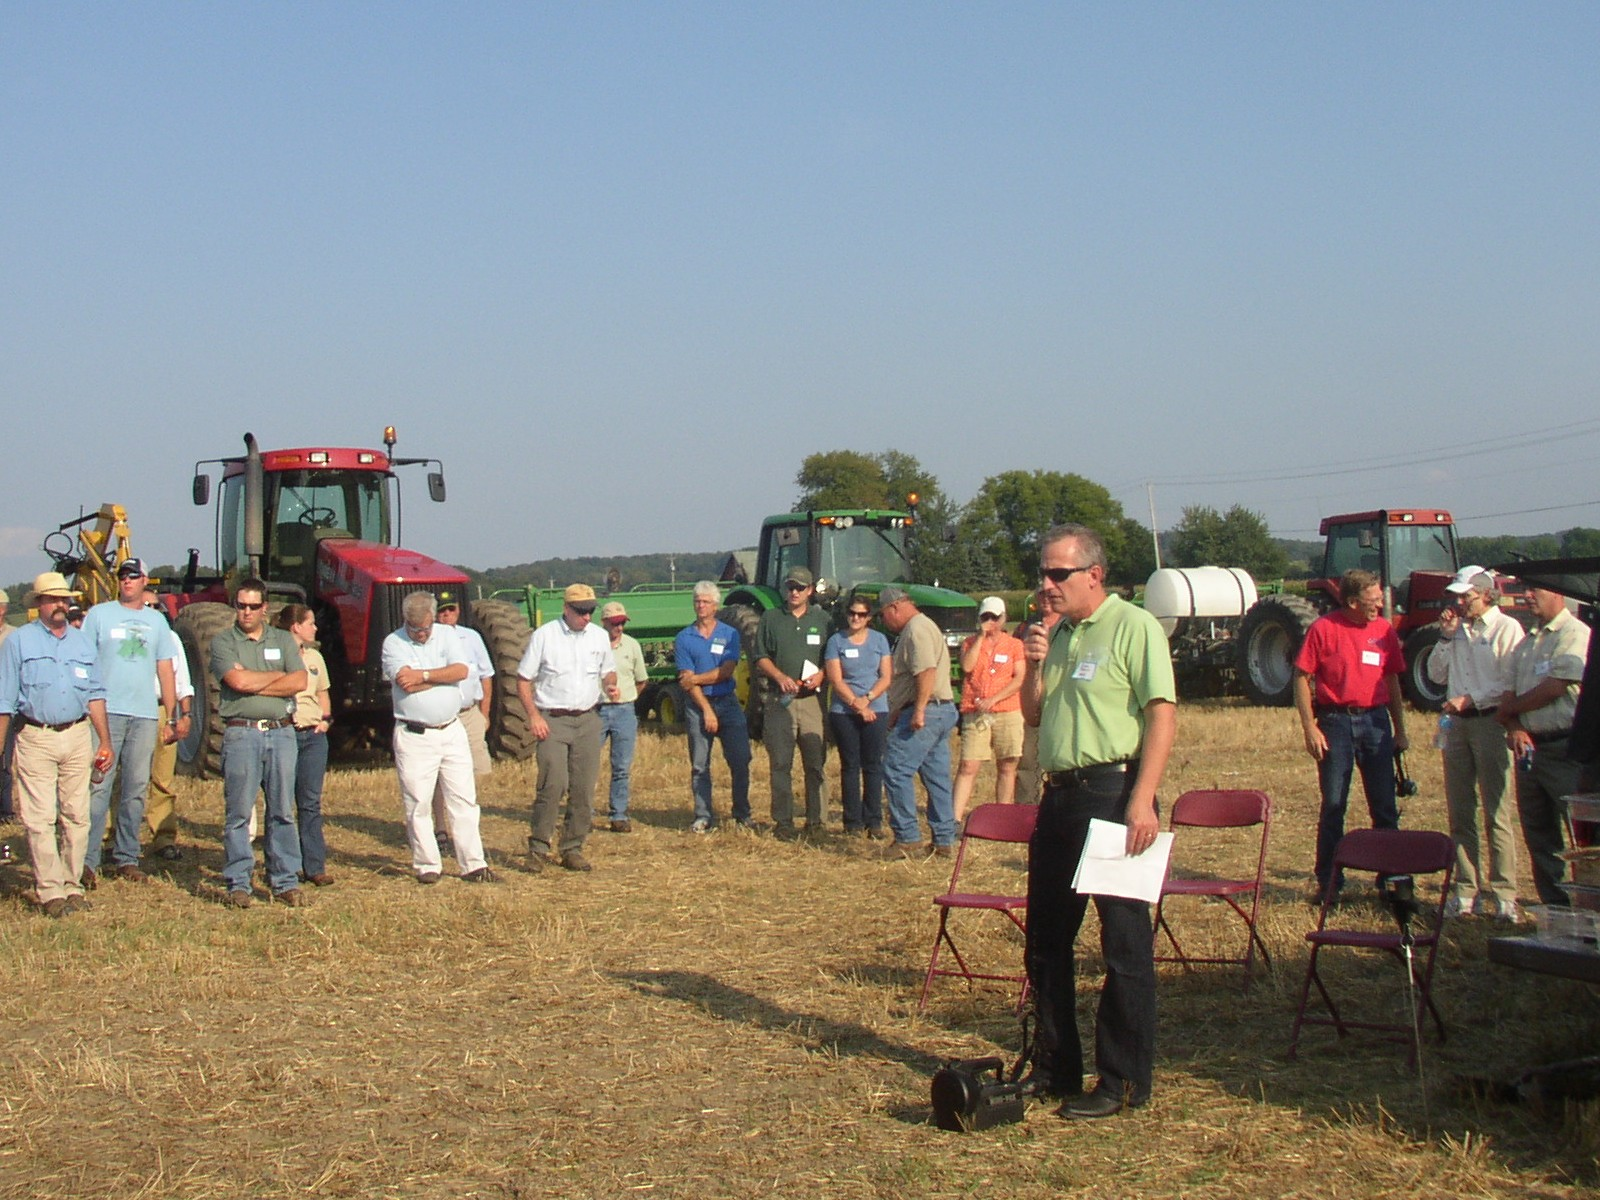 Don Pettit, State Conservationist, NRCS New York, speaking after the Soil Health meeting at the 2013 Empire Farm Days. Click image for full screen view